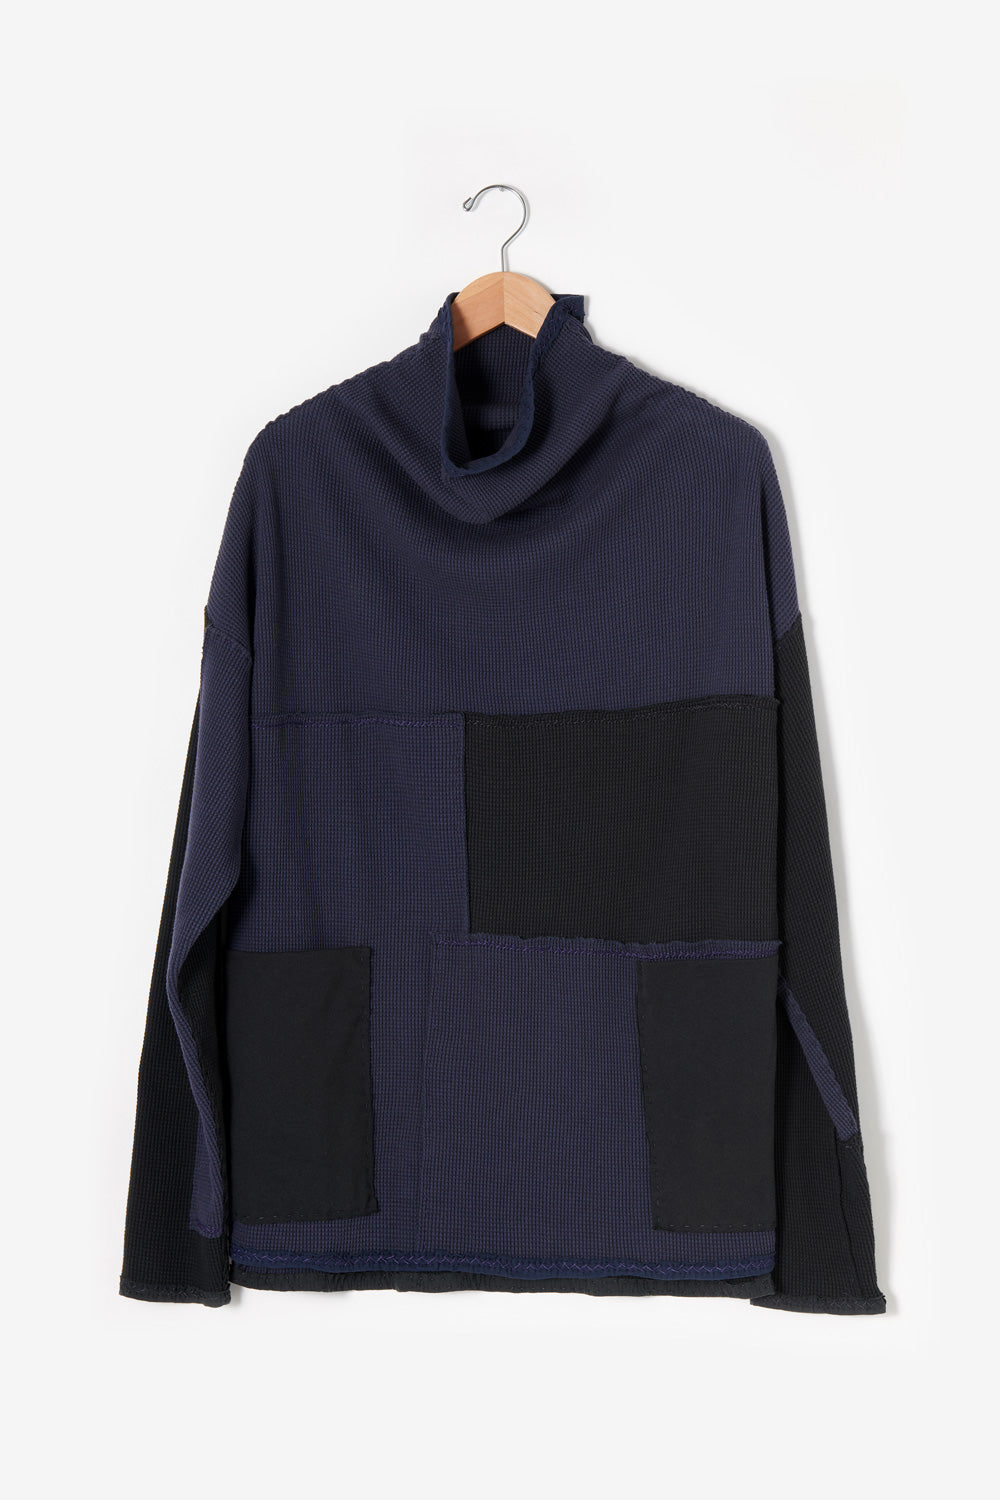 Alabama Chanin #30501 Zero Waste Waffle Tunic in Navy and Black 100% Organic Cotton Waffle Knit Sewn By Artisans as One-of-a-Kind Designs